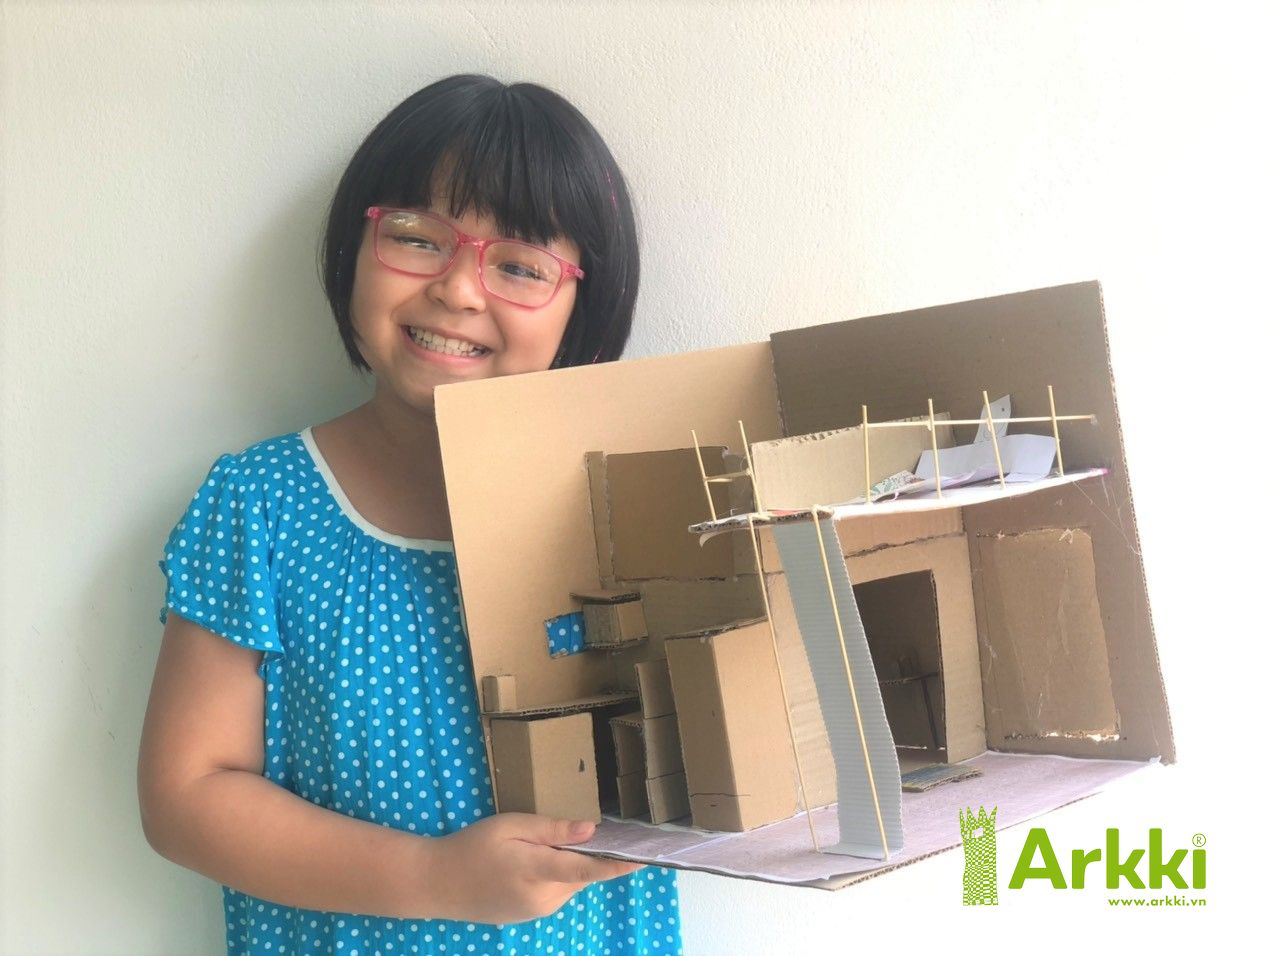 During lock down arkki@home free projects are inspiring children from around the world to ideate the future of cities and homes.